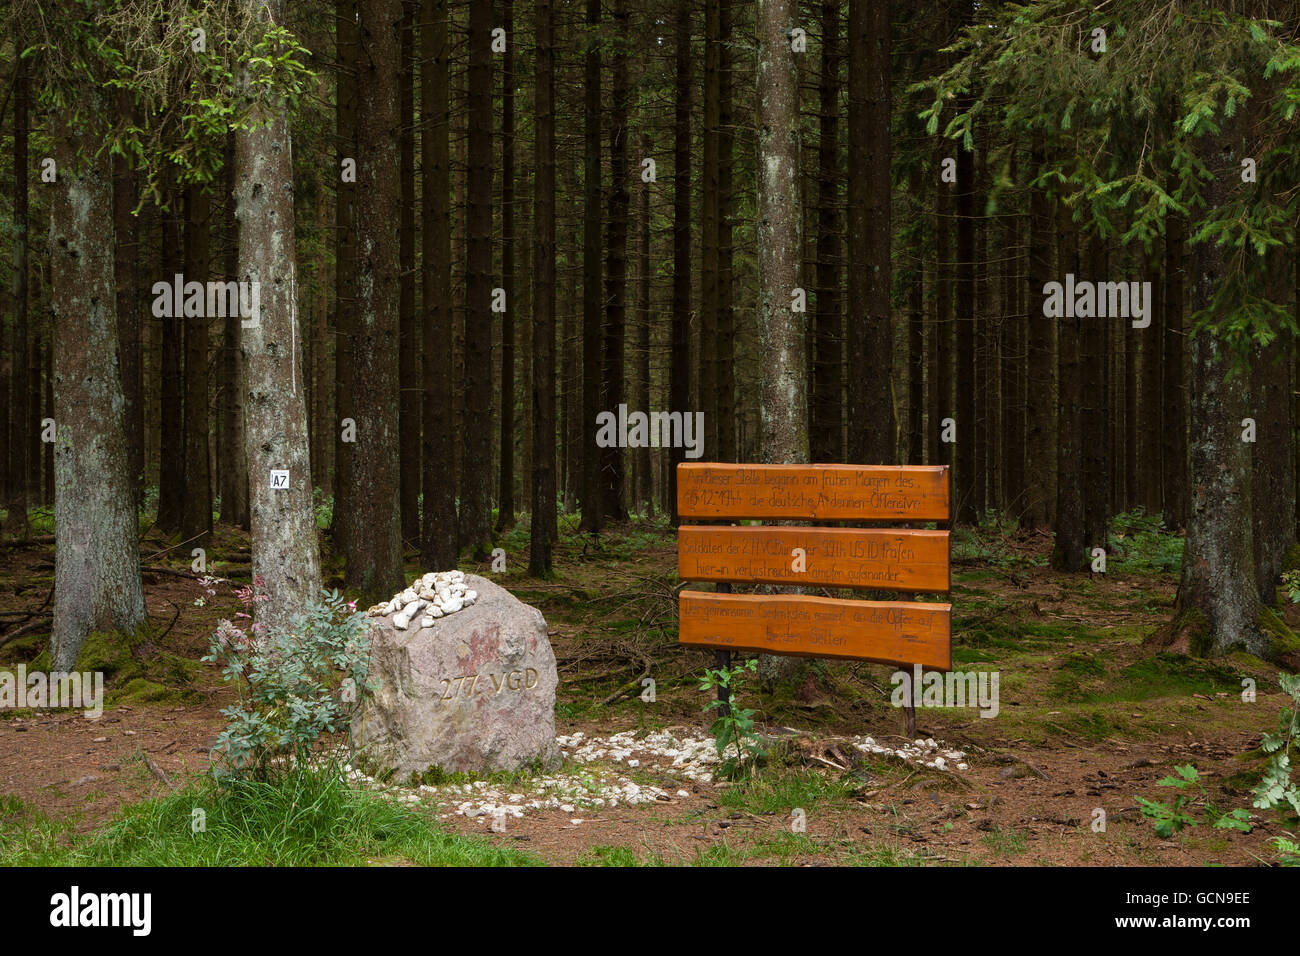 Europe, Germany, North Rhine-Westphalia, memorial stone and plaque of the Battle of the Bulge in a forest near Hellenthal - Stock Image